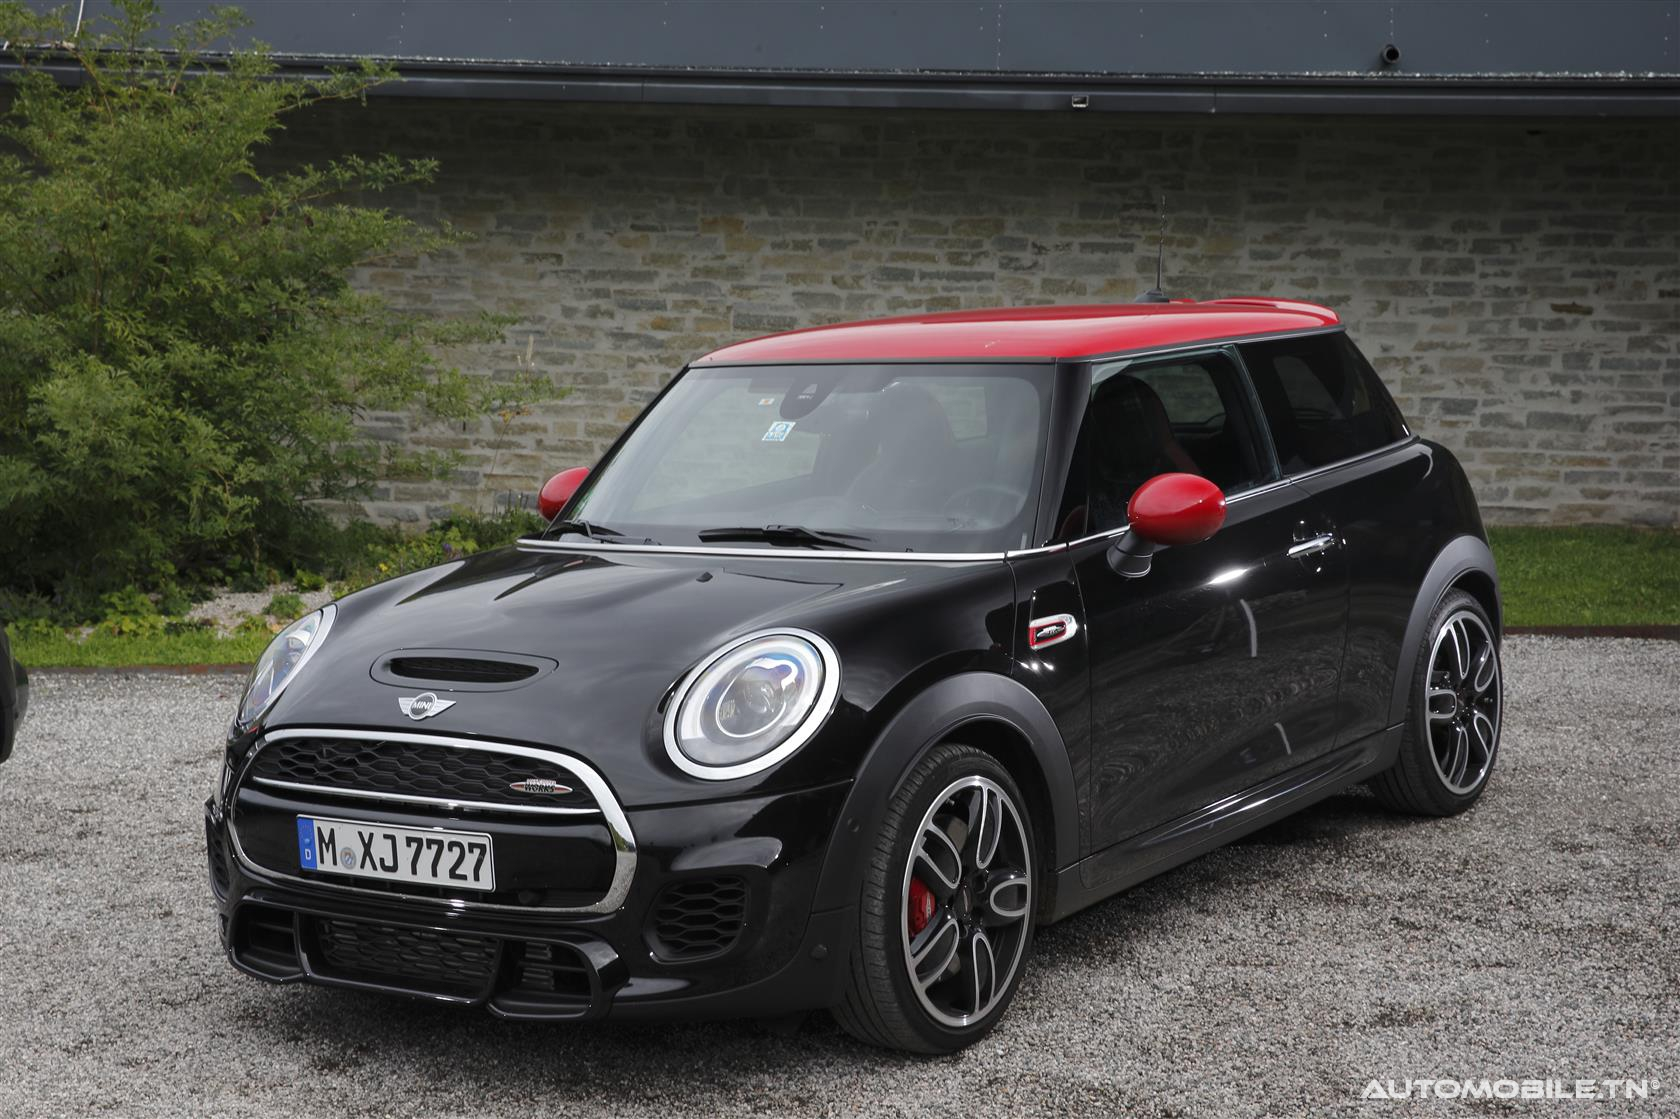 essais essai de la mini cooper s et john cooper works 2015. Black Bedroom Furniture Sets. Home Design Ideas